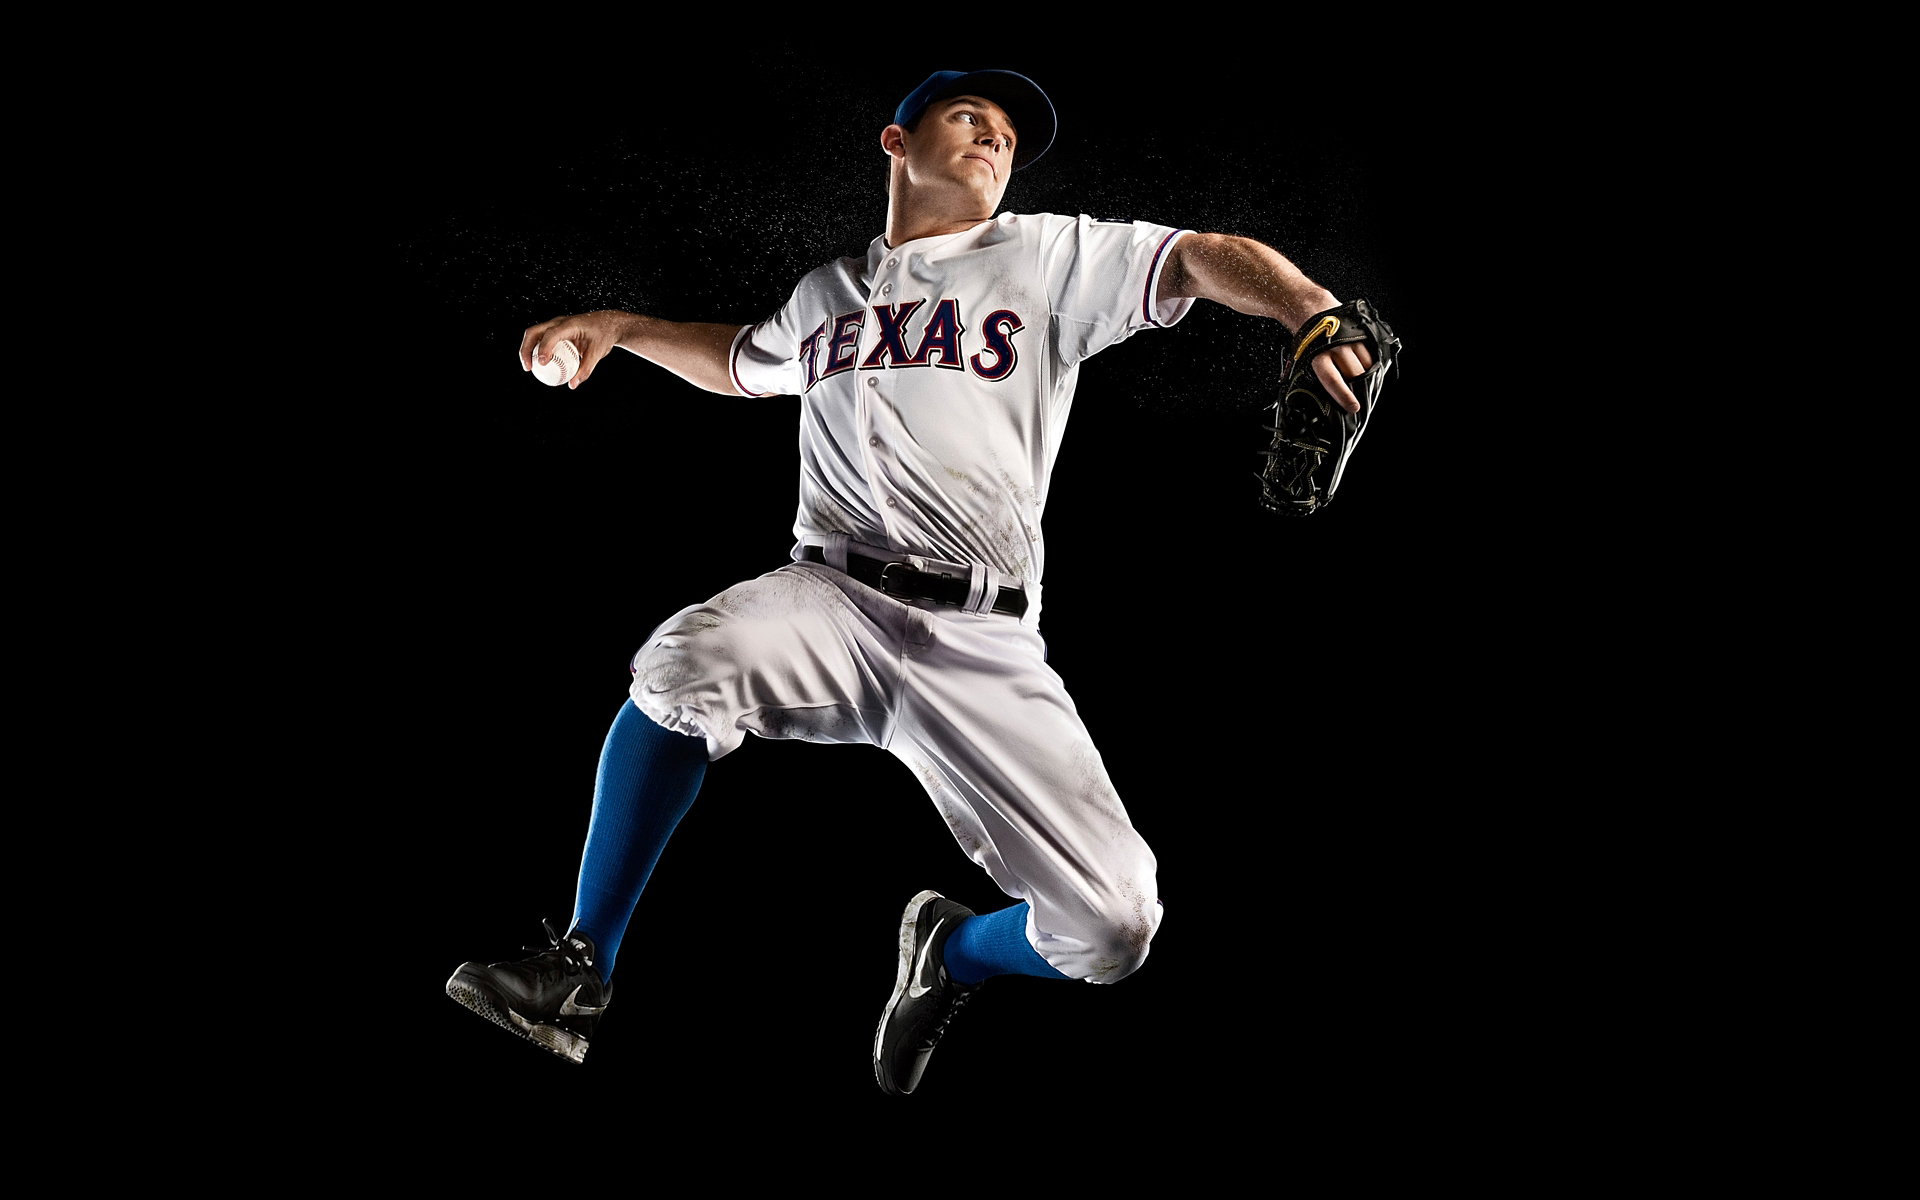 Ian Kinsler photographed by Blair Bunting